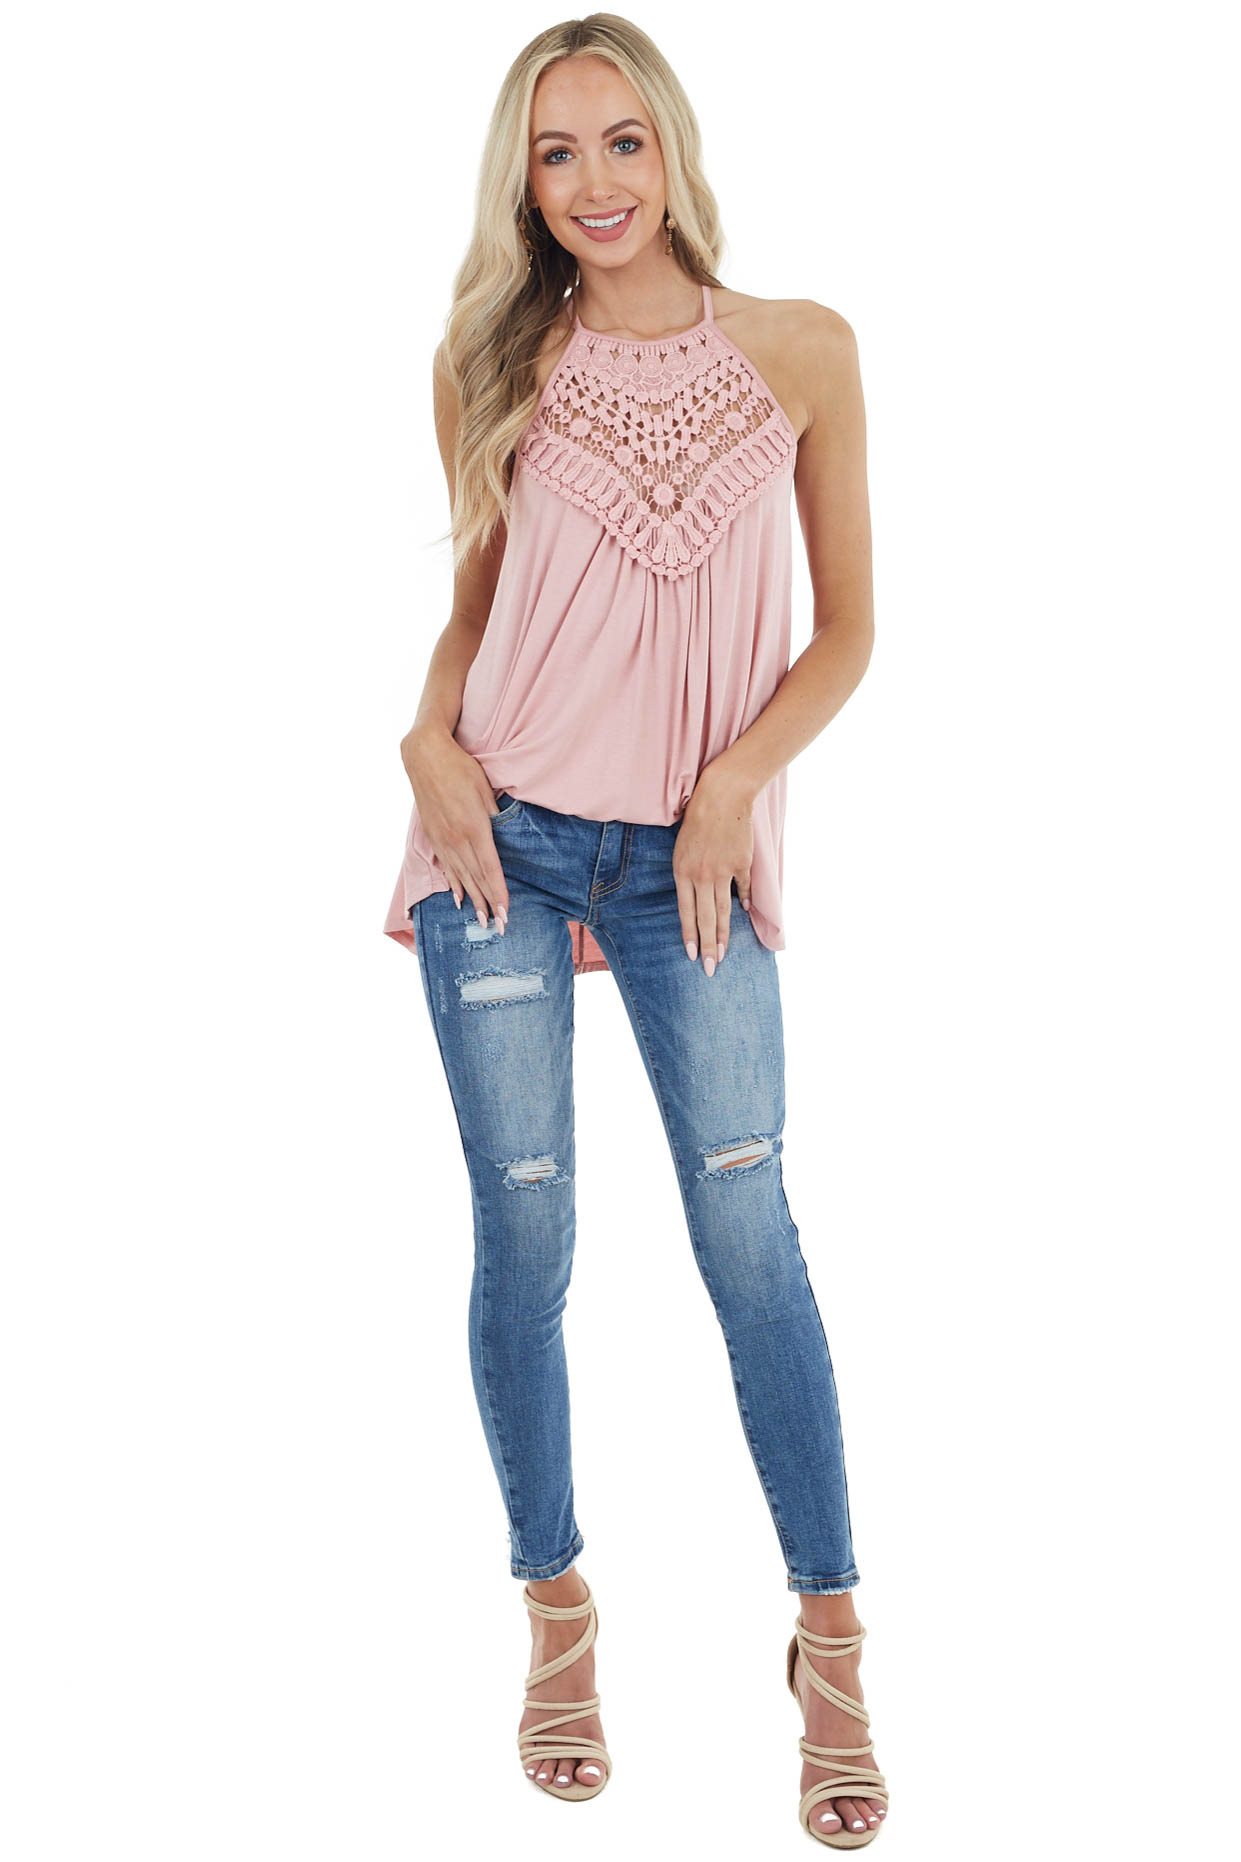 Petal Pink Tank Top with Sheer Lace Chest